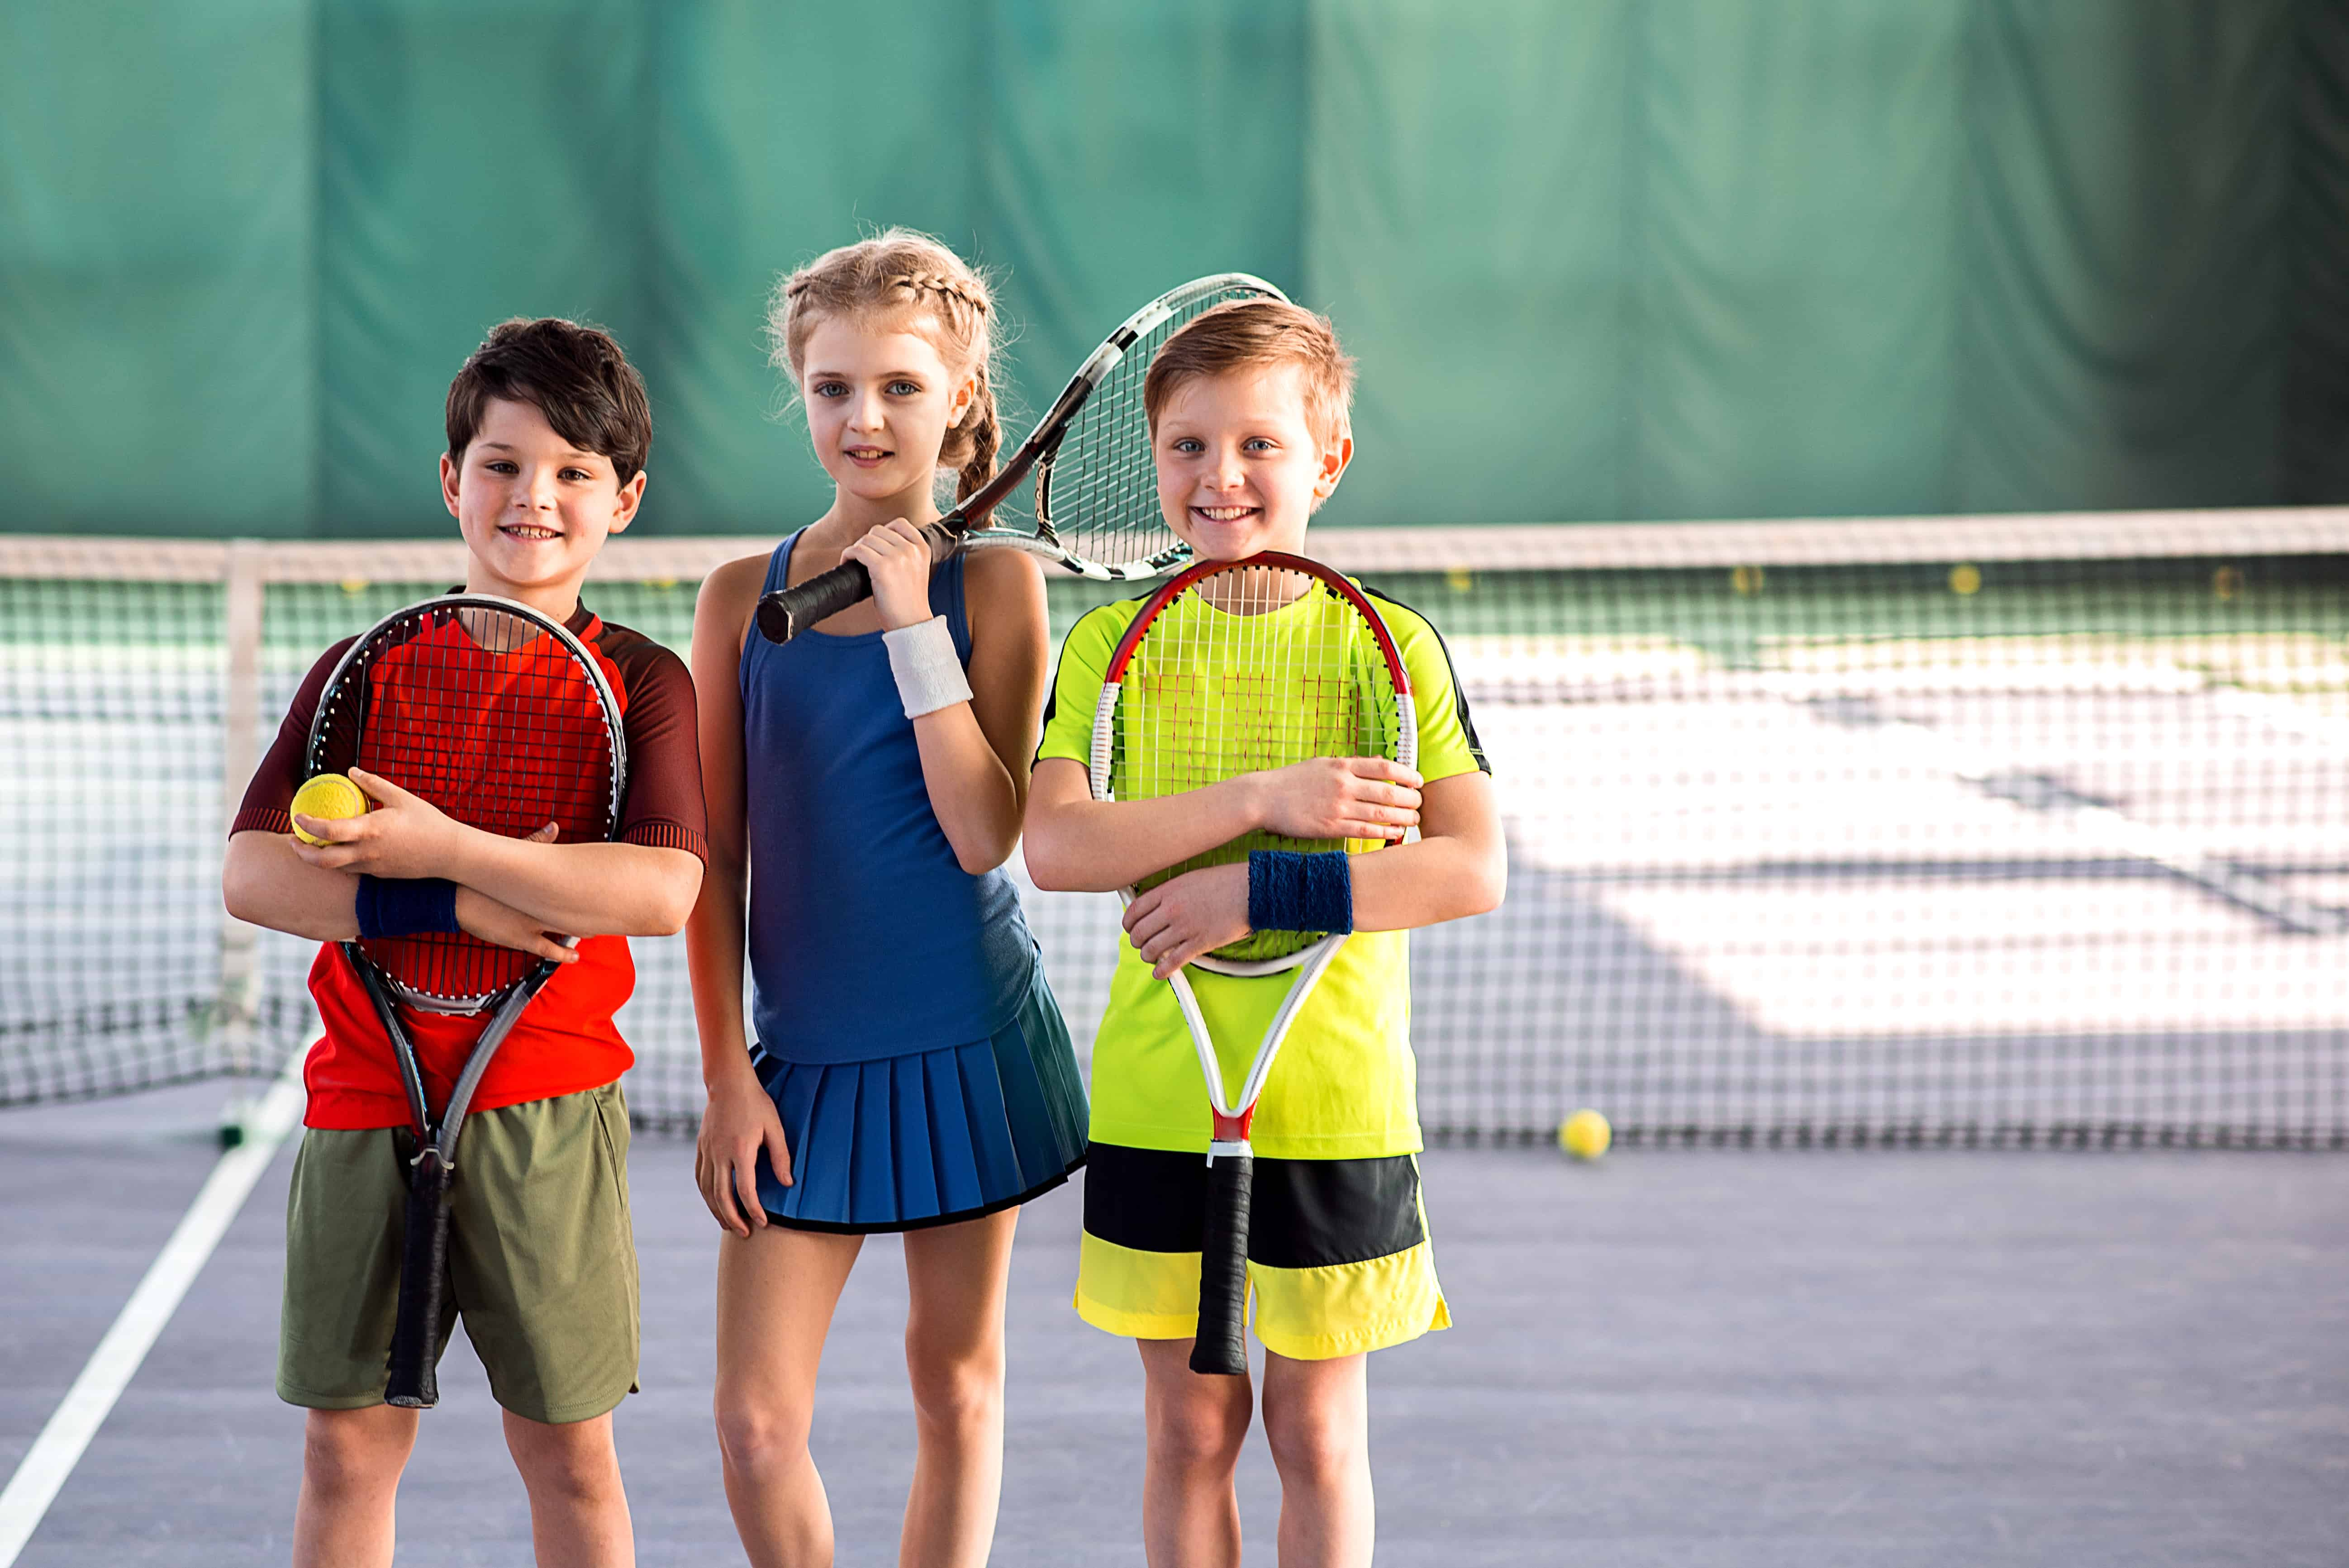 Children at Tennis Club